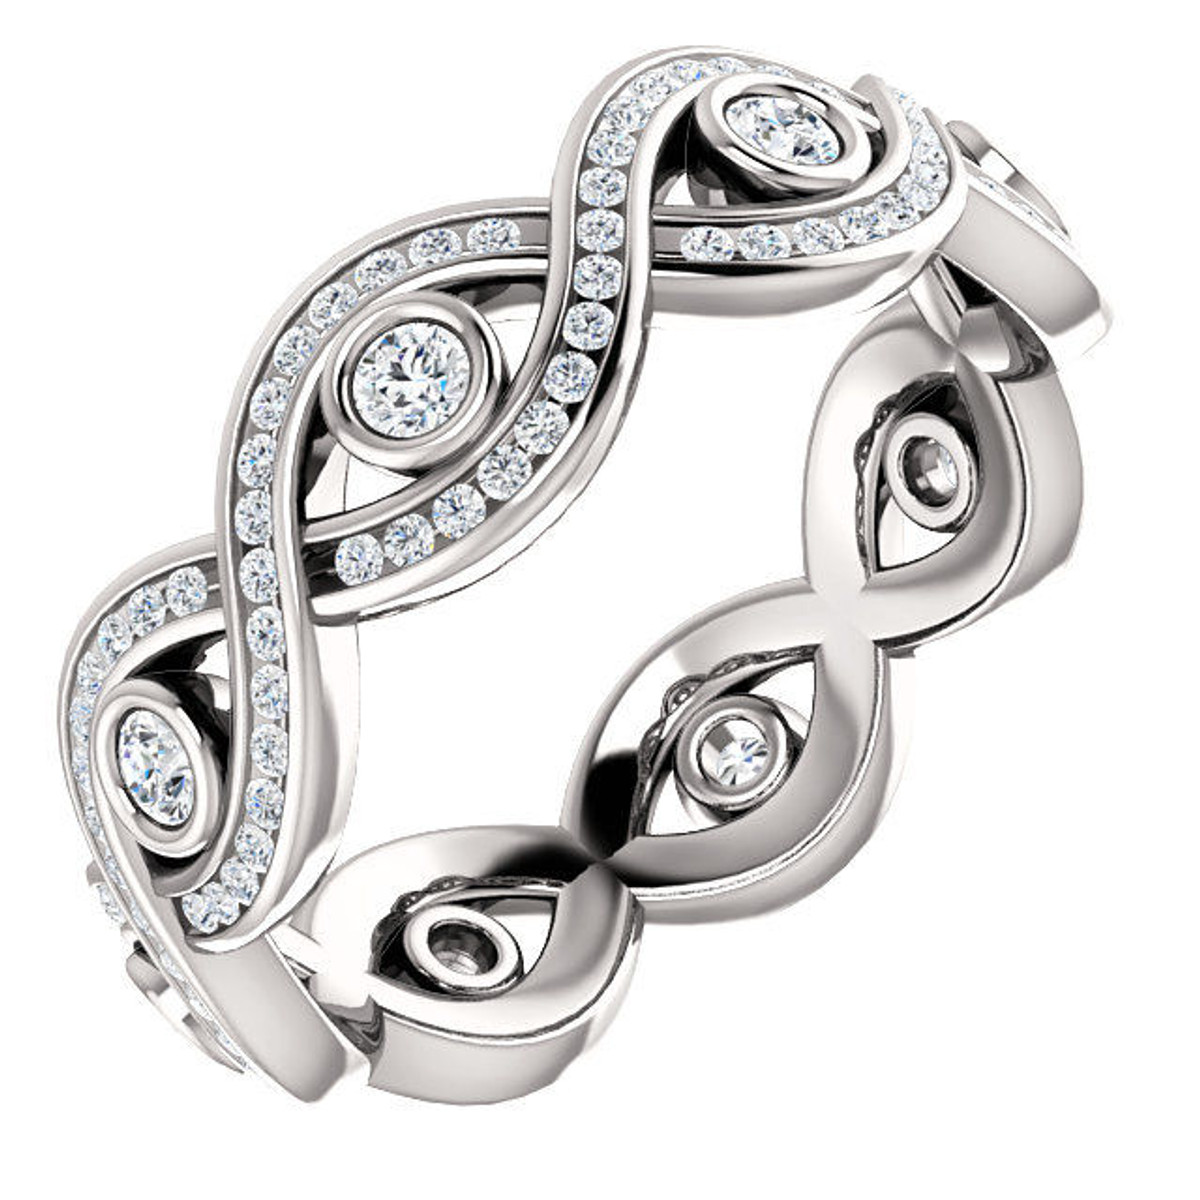 14Kt White Gold Twisted Eternity Ring